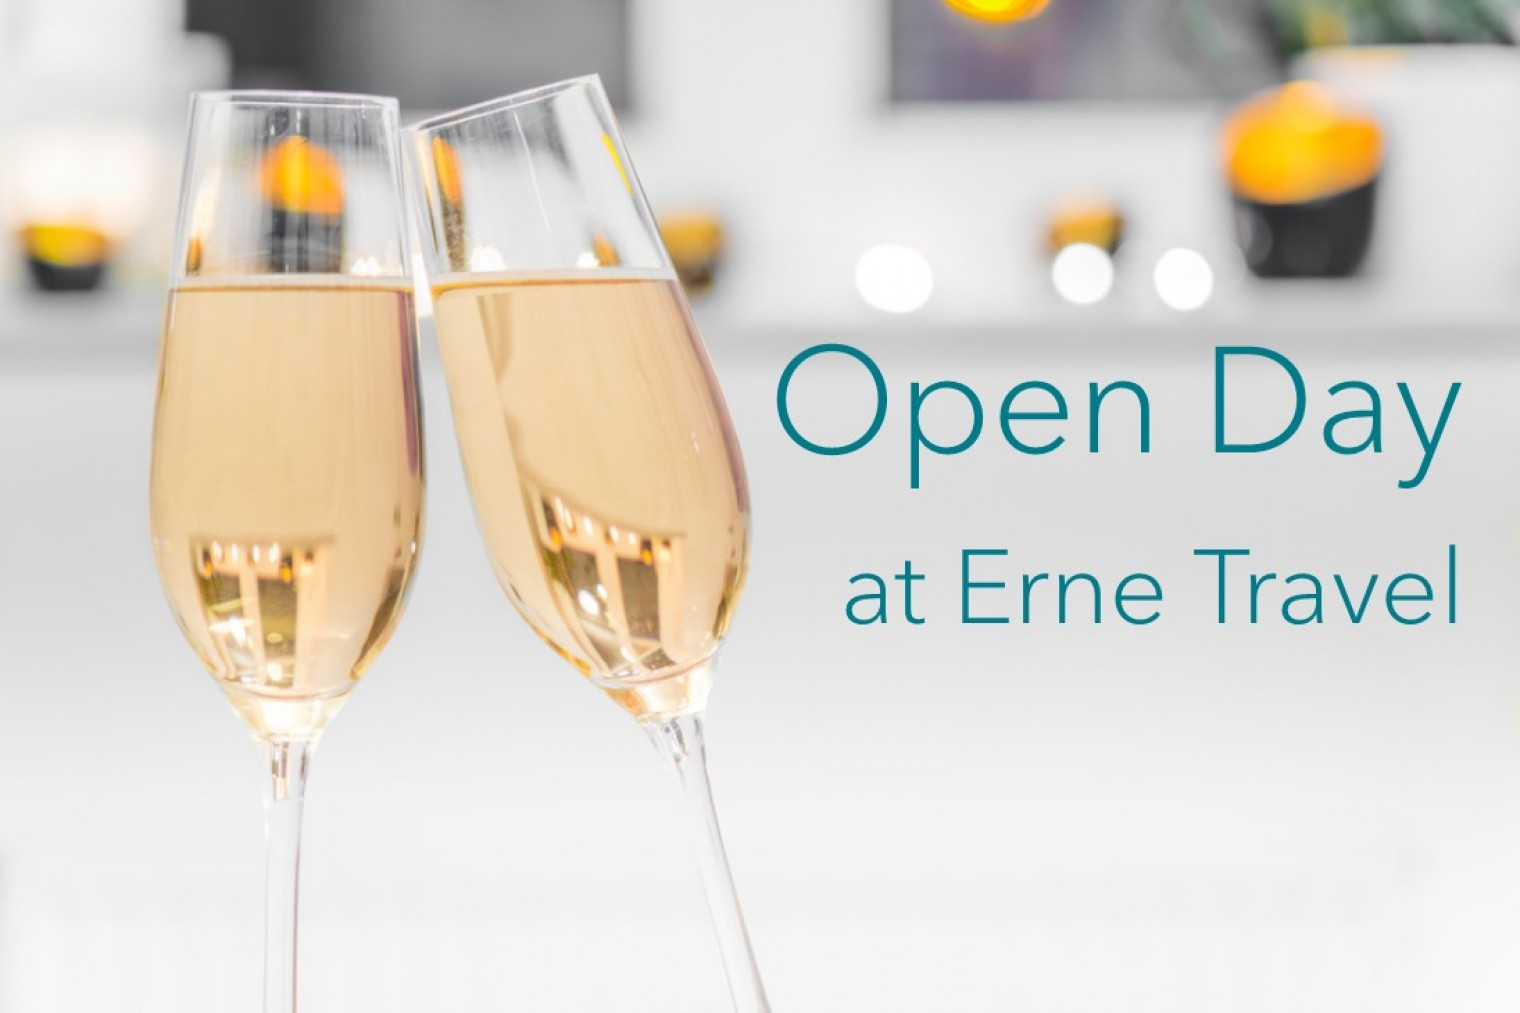 Open Day at Erne Travel